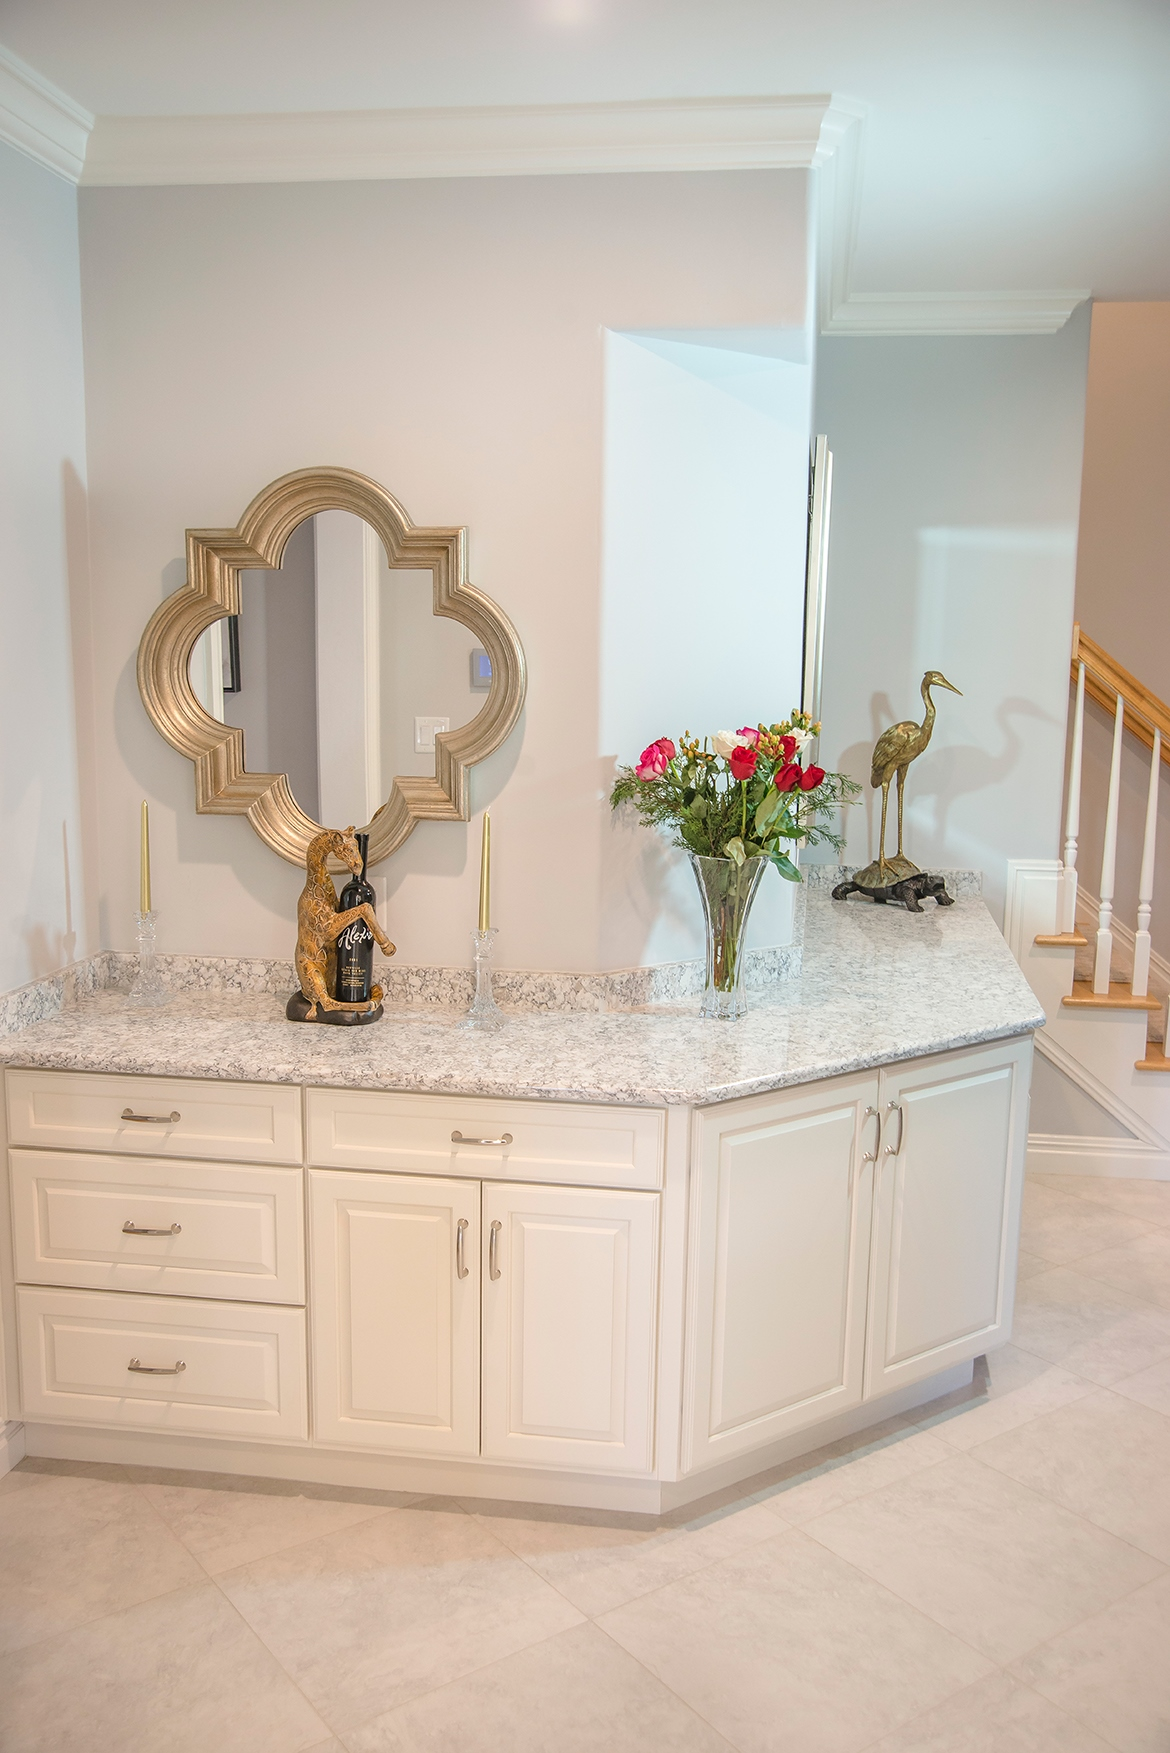 Old Bay - Accent Kitchens and Bath - Kitchen and Bath ...